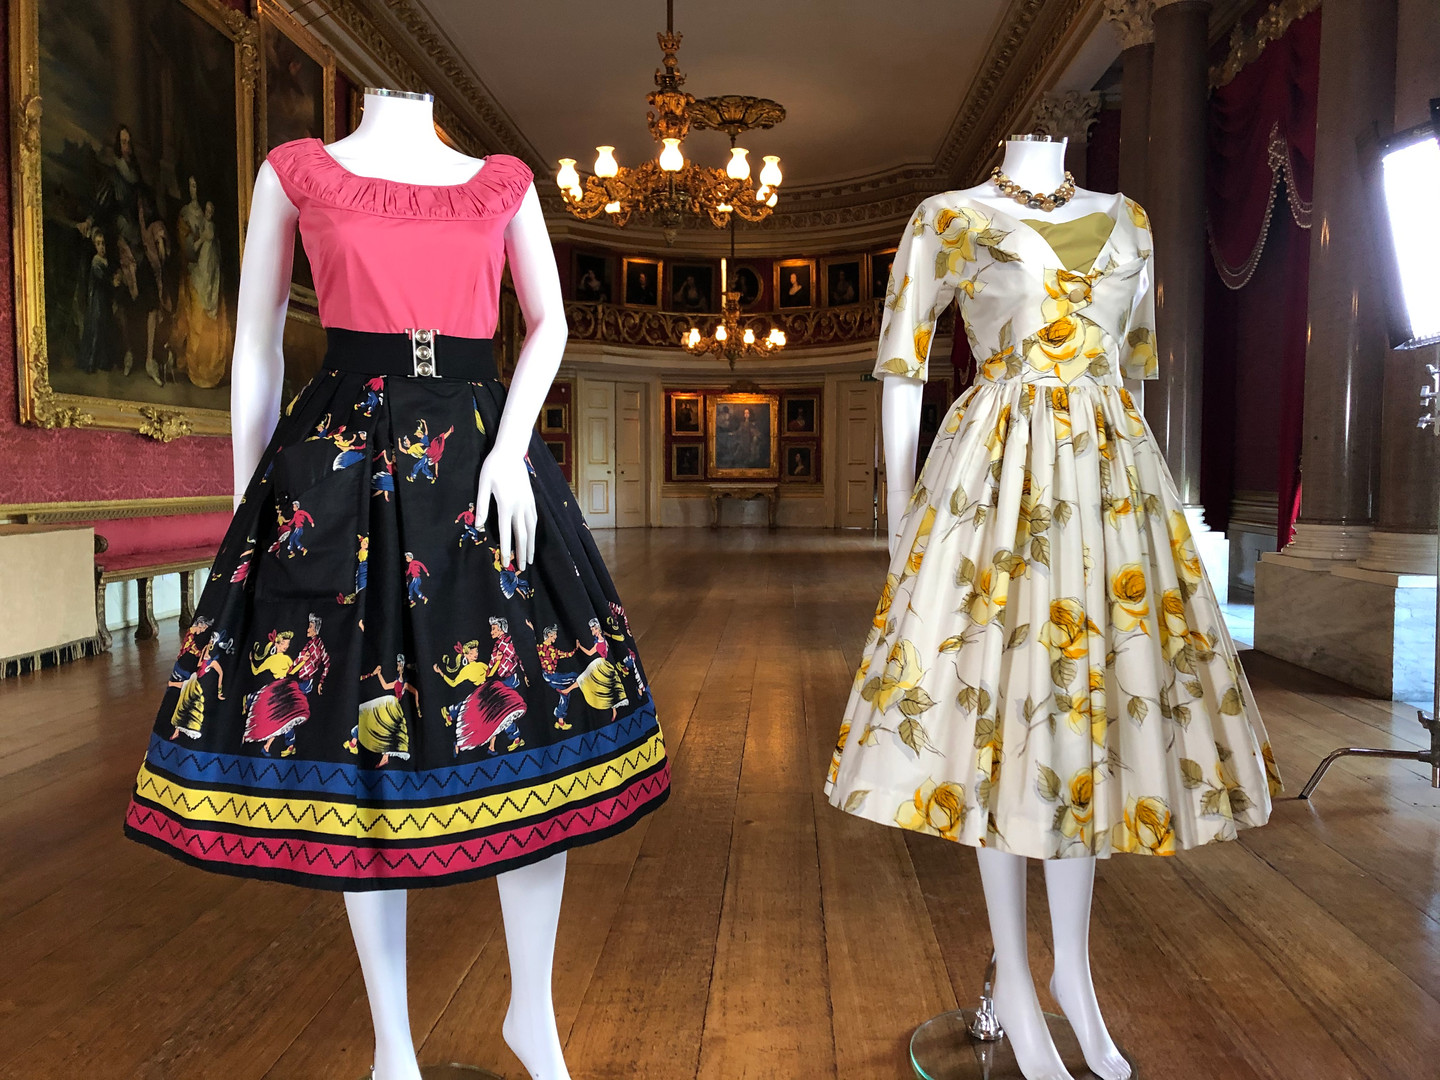 1950s fashion in the ballroom, Goodwood House